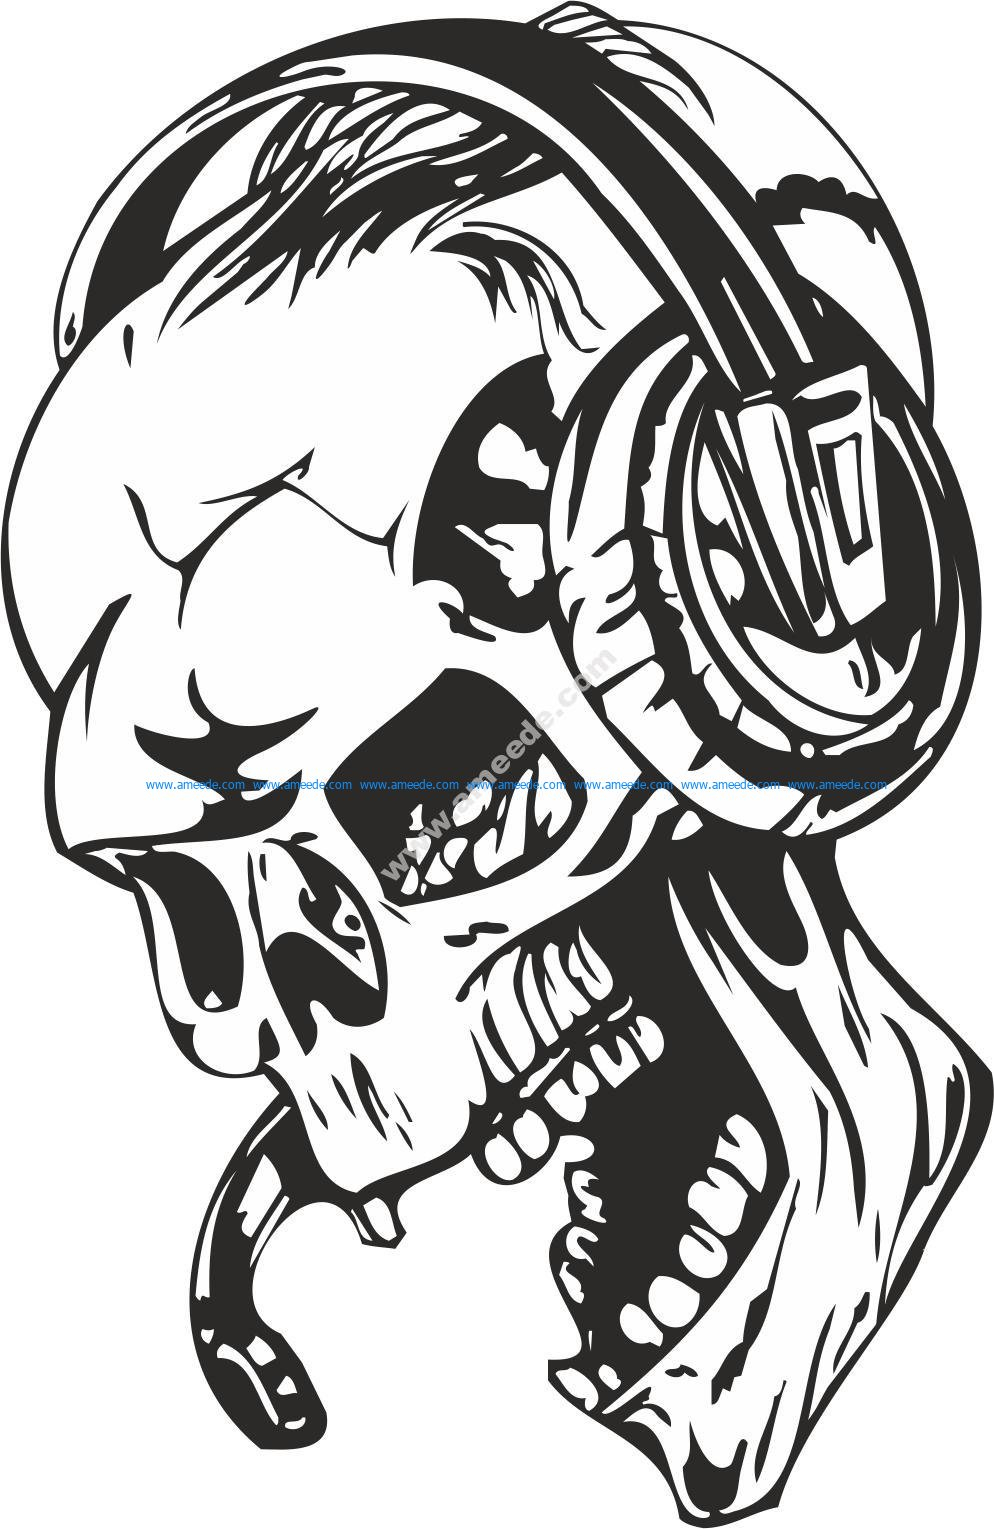 Skull with Headphones Sticker Vector